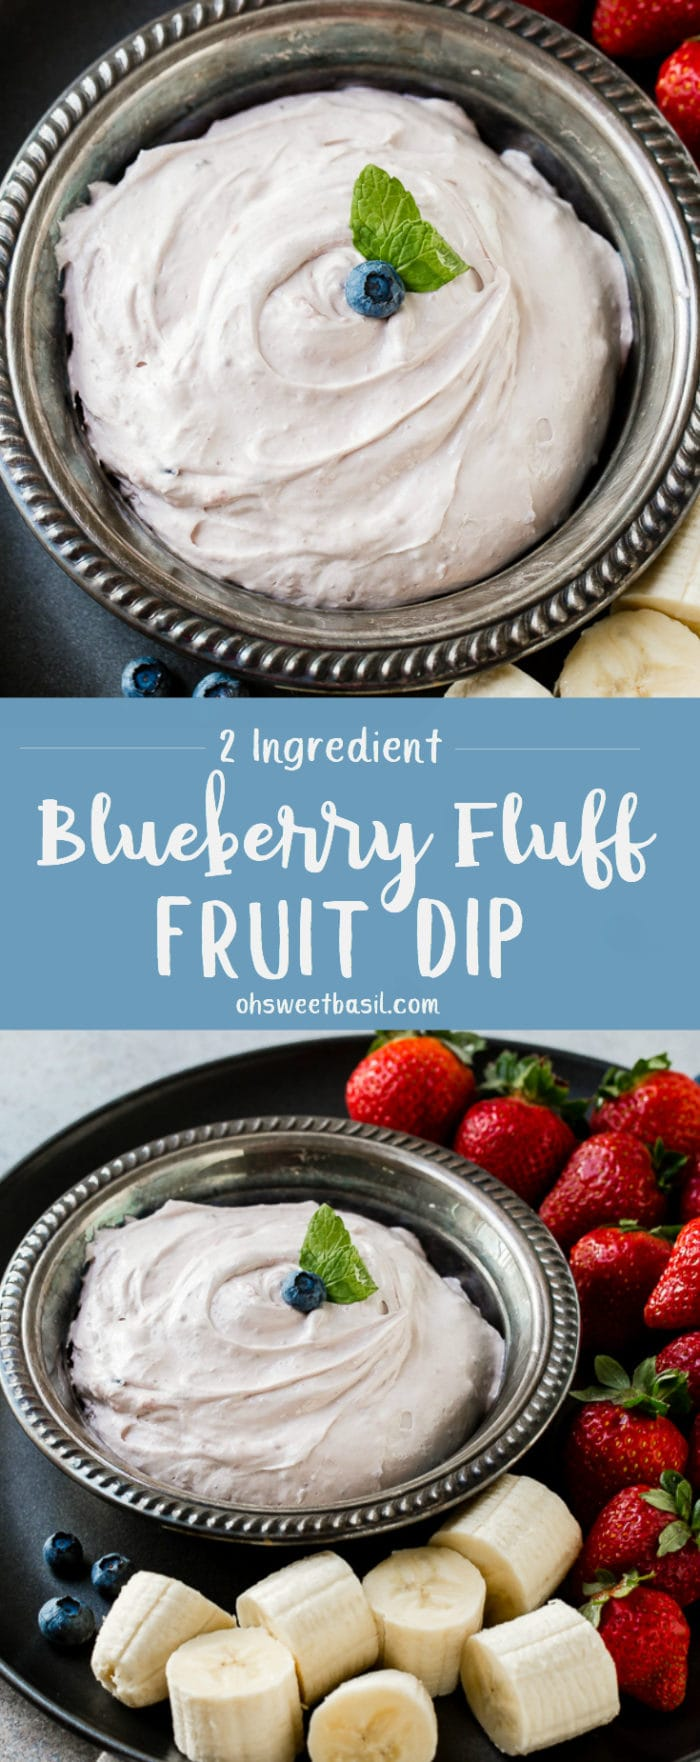 A silver bowl full of Blueberry Fluff Fruit Dip with a side of fruit to dip in on the side